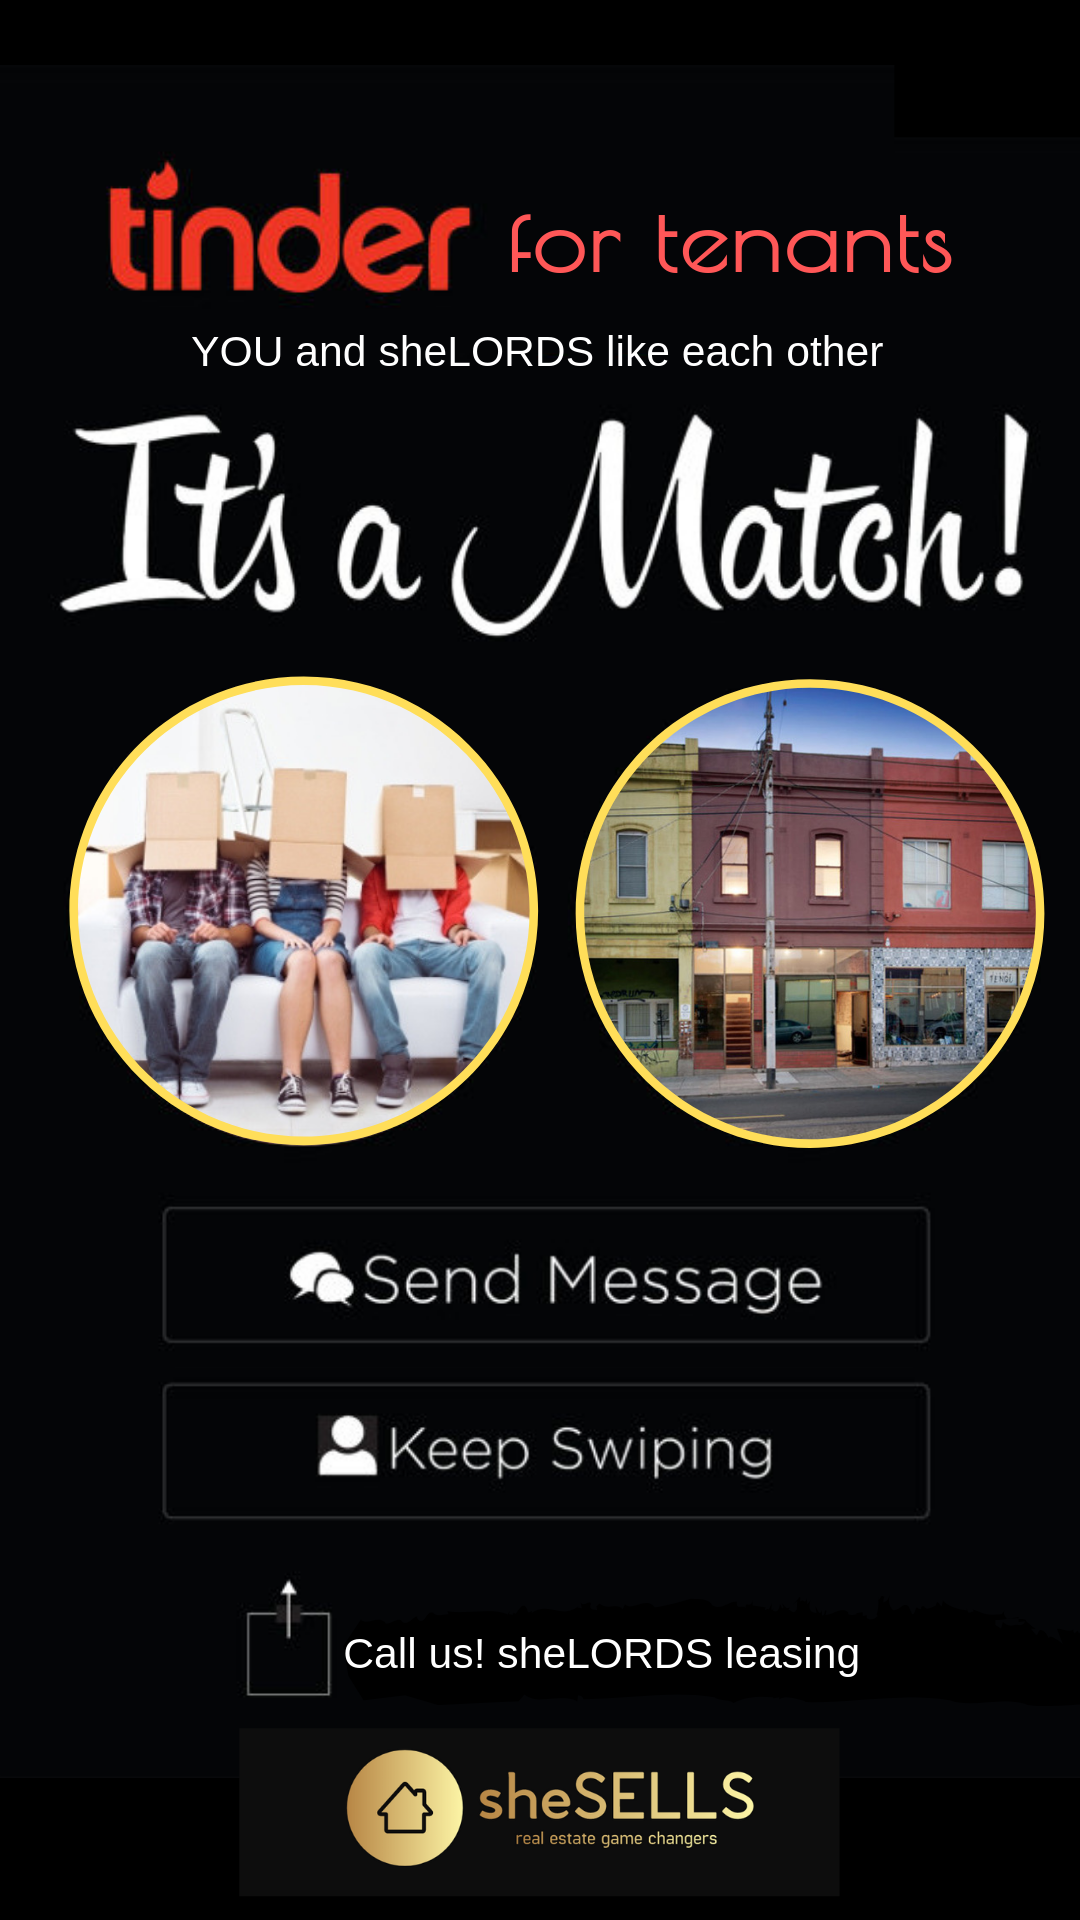 tinder for tenants.png